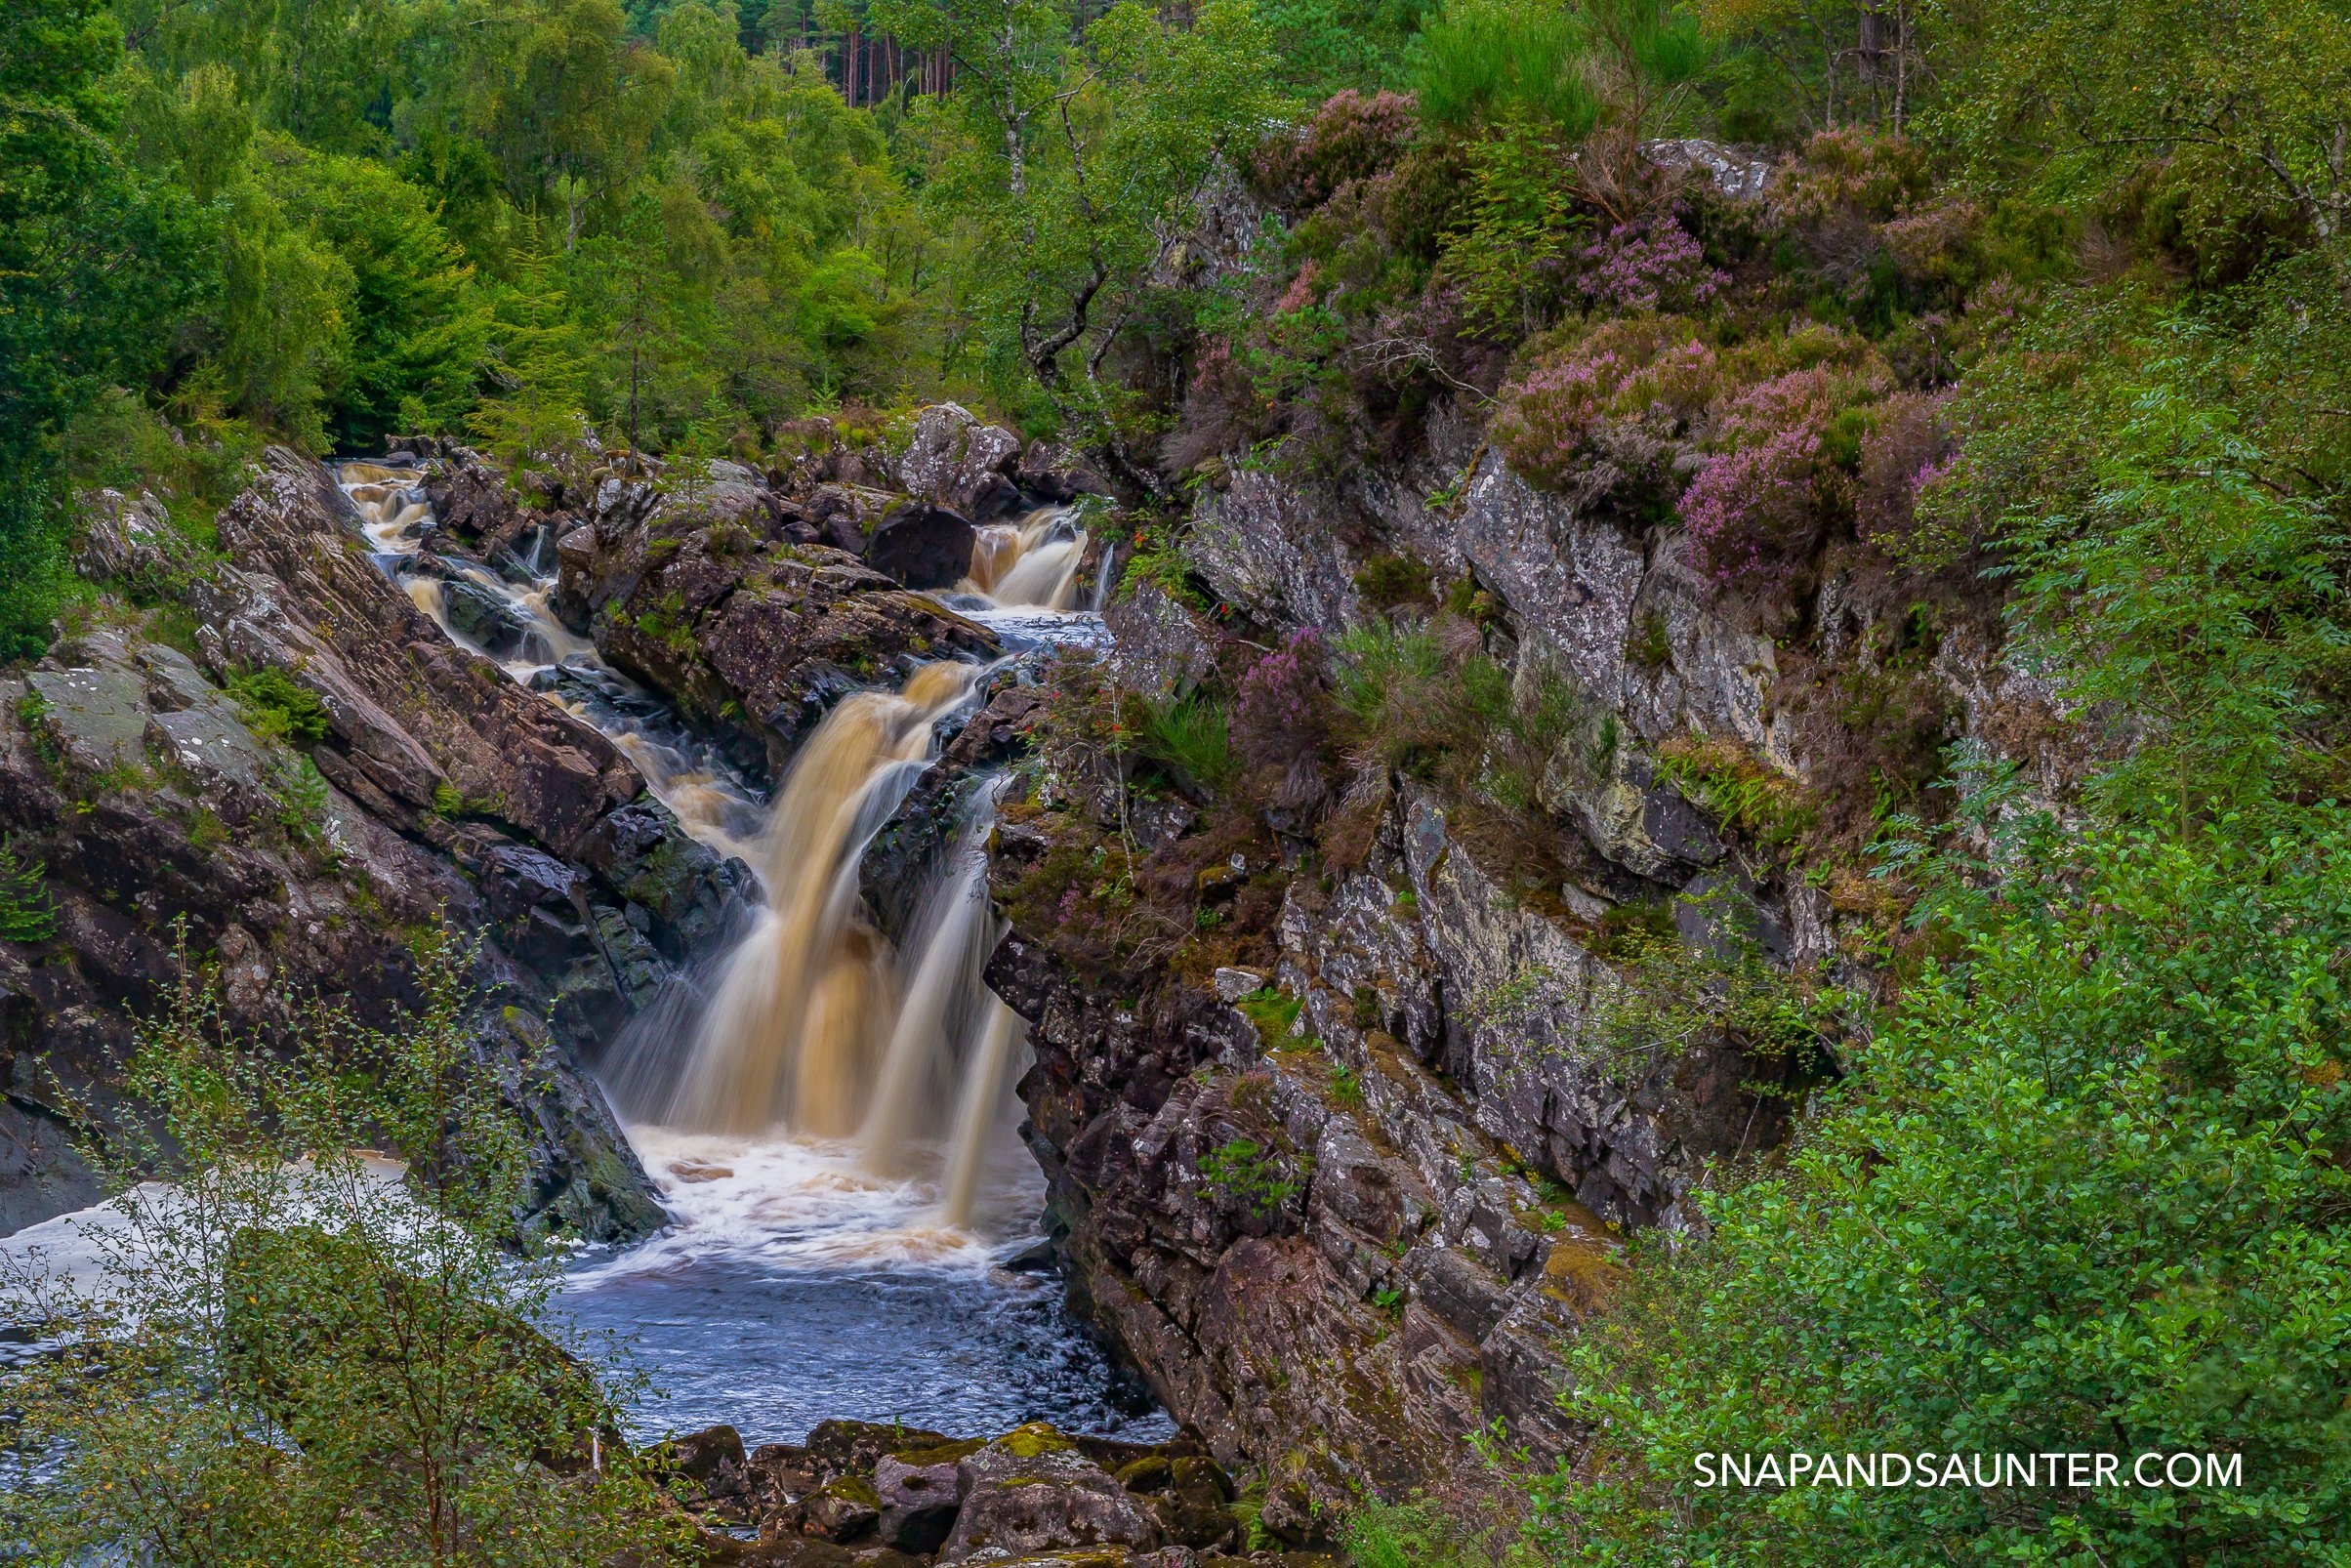 waterfall at Rogie Falls on the North Coast 500 route in Scotland